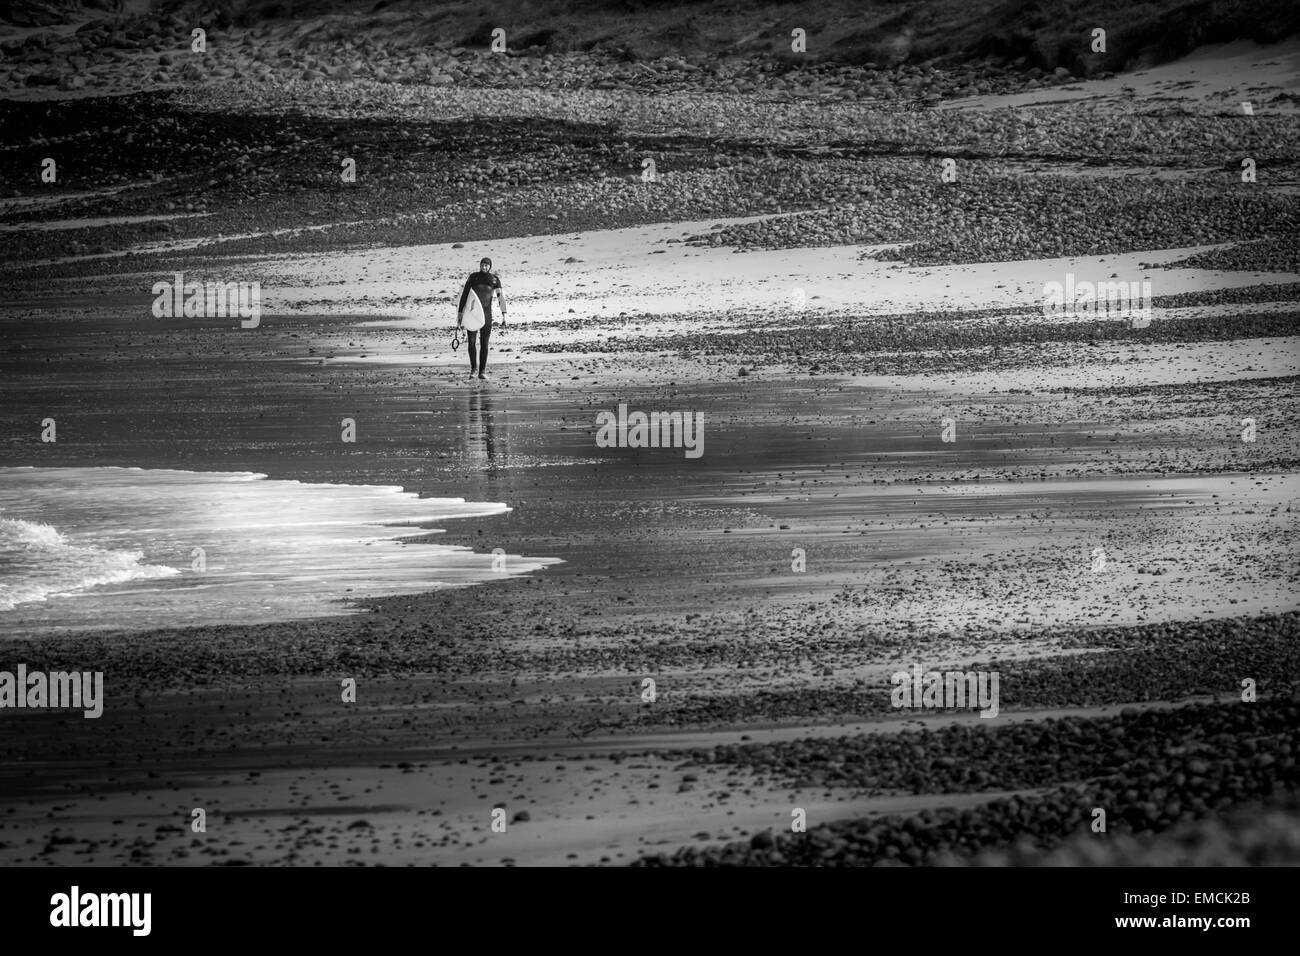 Lone surfer on the sands of Traigh Siar, Vatersay, Isle of Barra, Outer Hebrides, UK - Stock Image